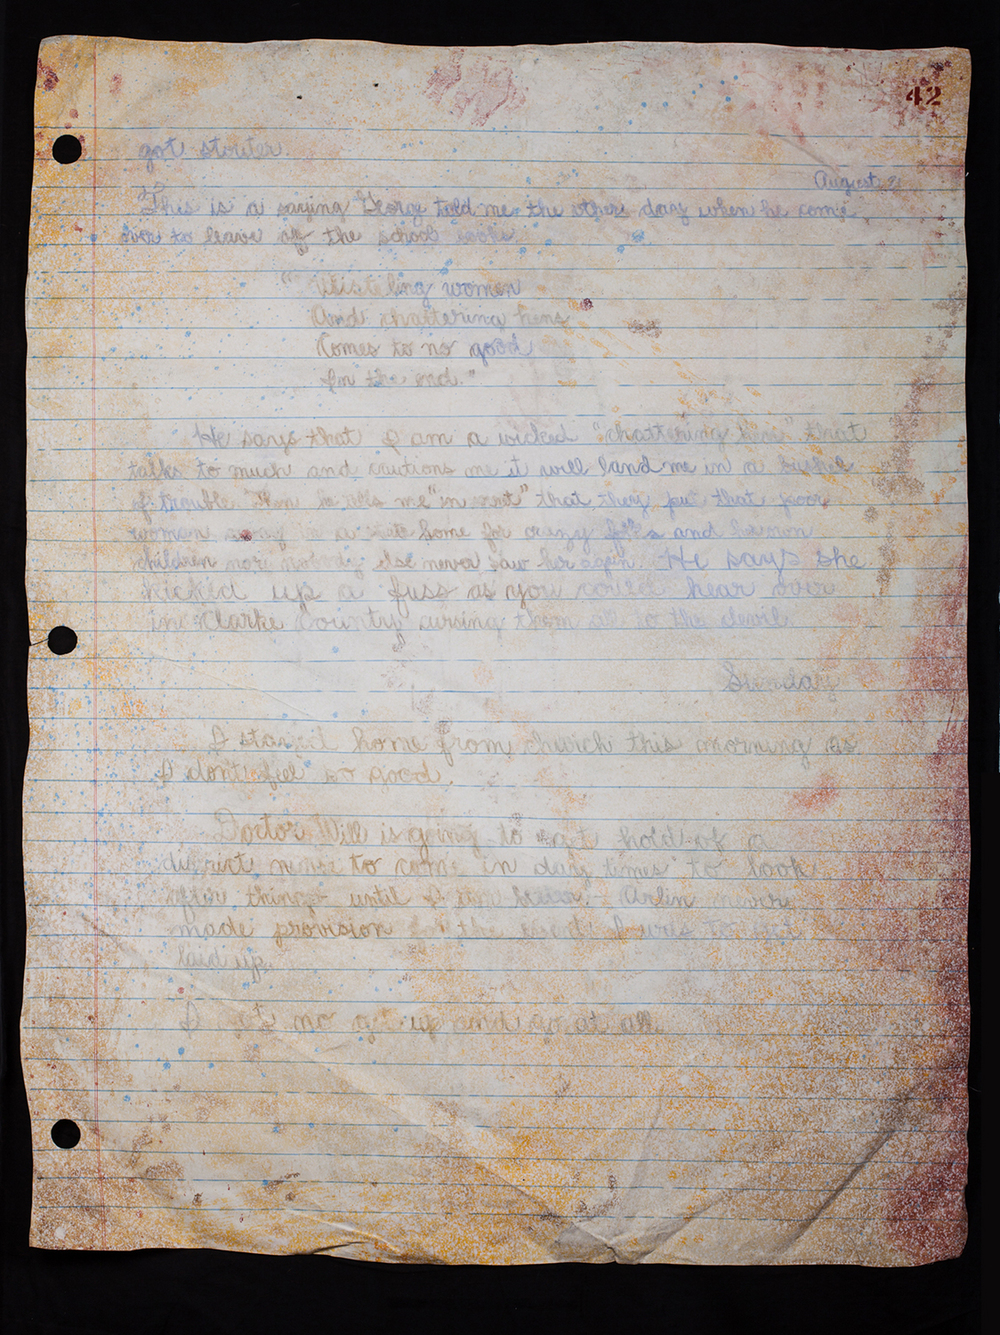 No. 6 triptych): Three Stapled pages from Myrna's Diary - Pgs. 41,42,43. - pg. 42